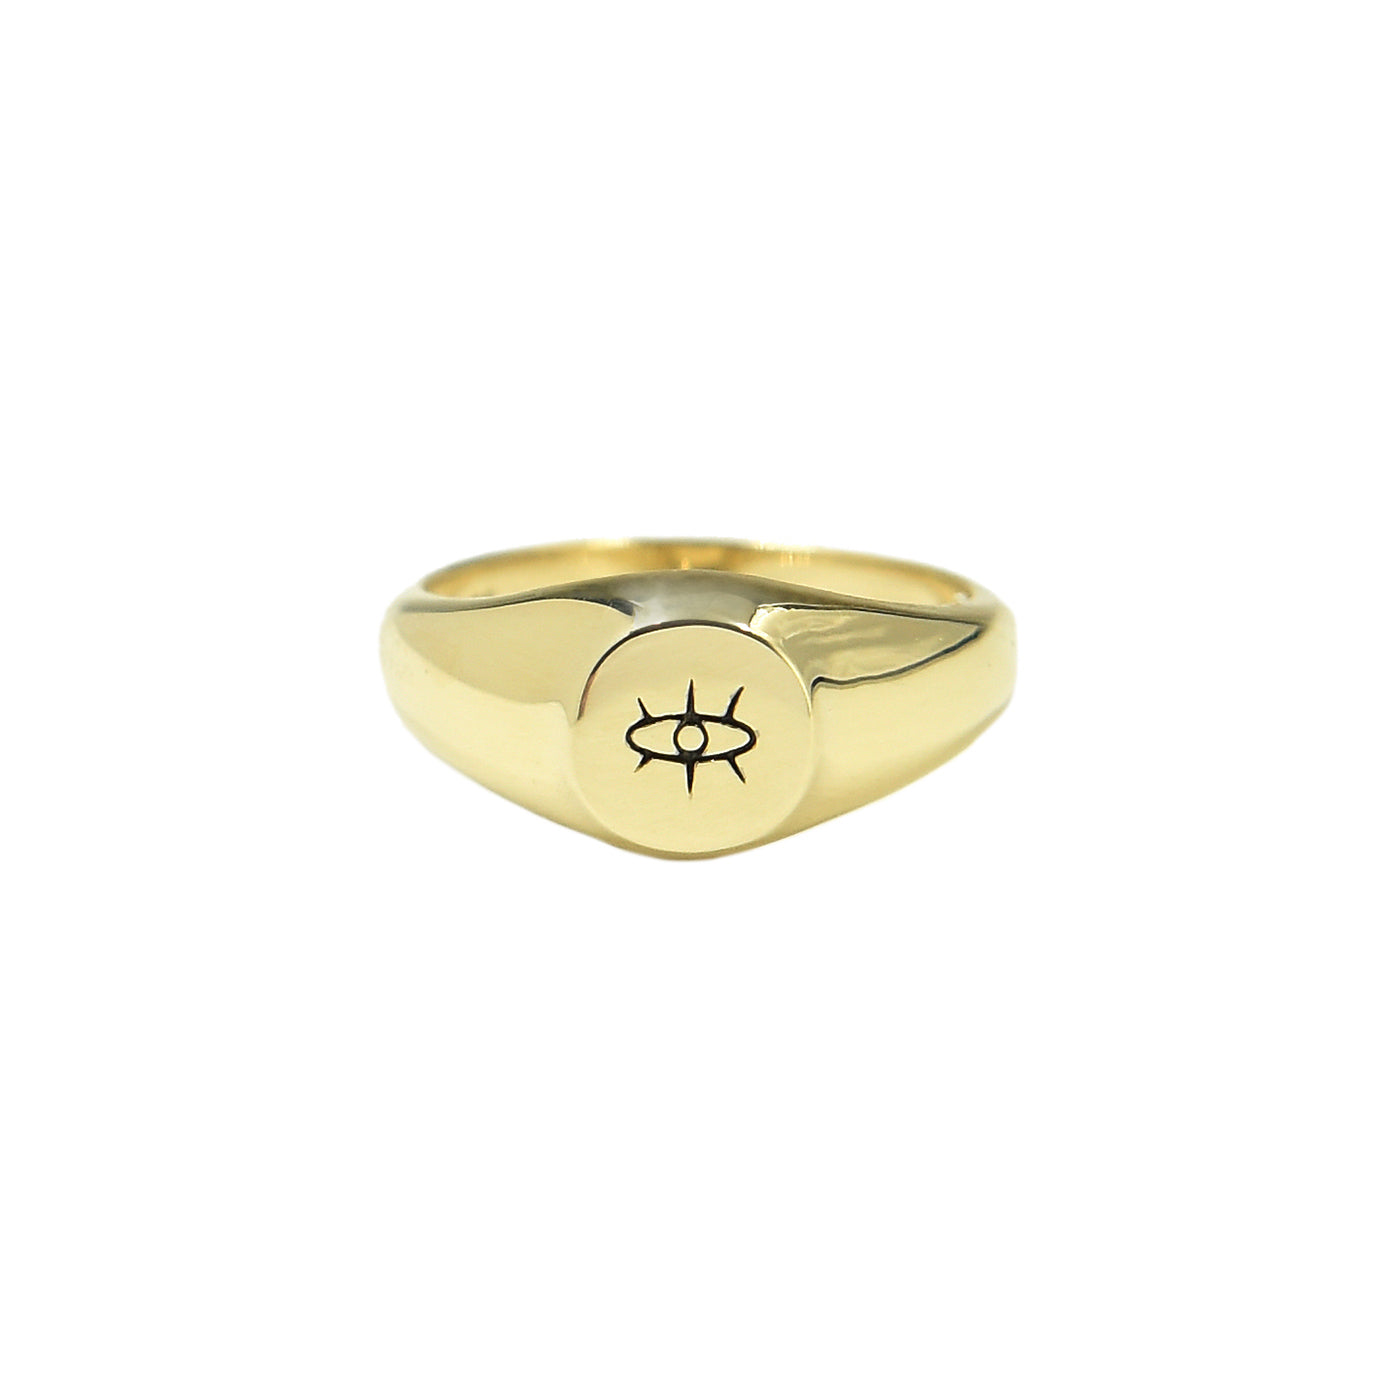 Veronica Signet Ring - Bondeye - Ring | Broken English Jewelry